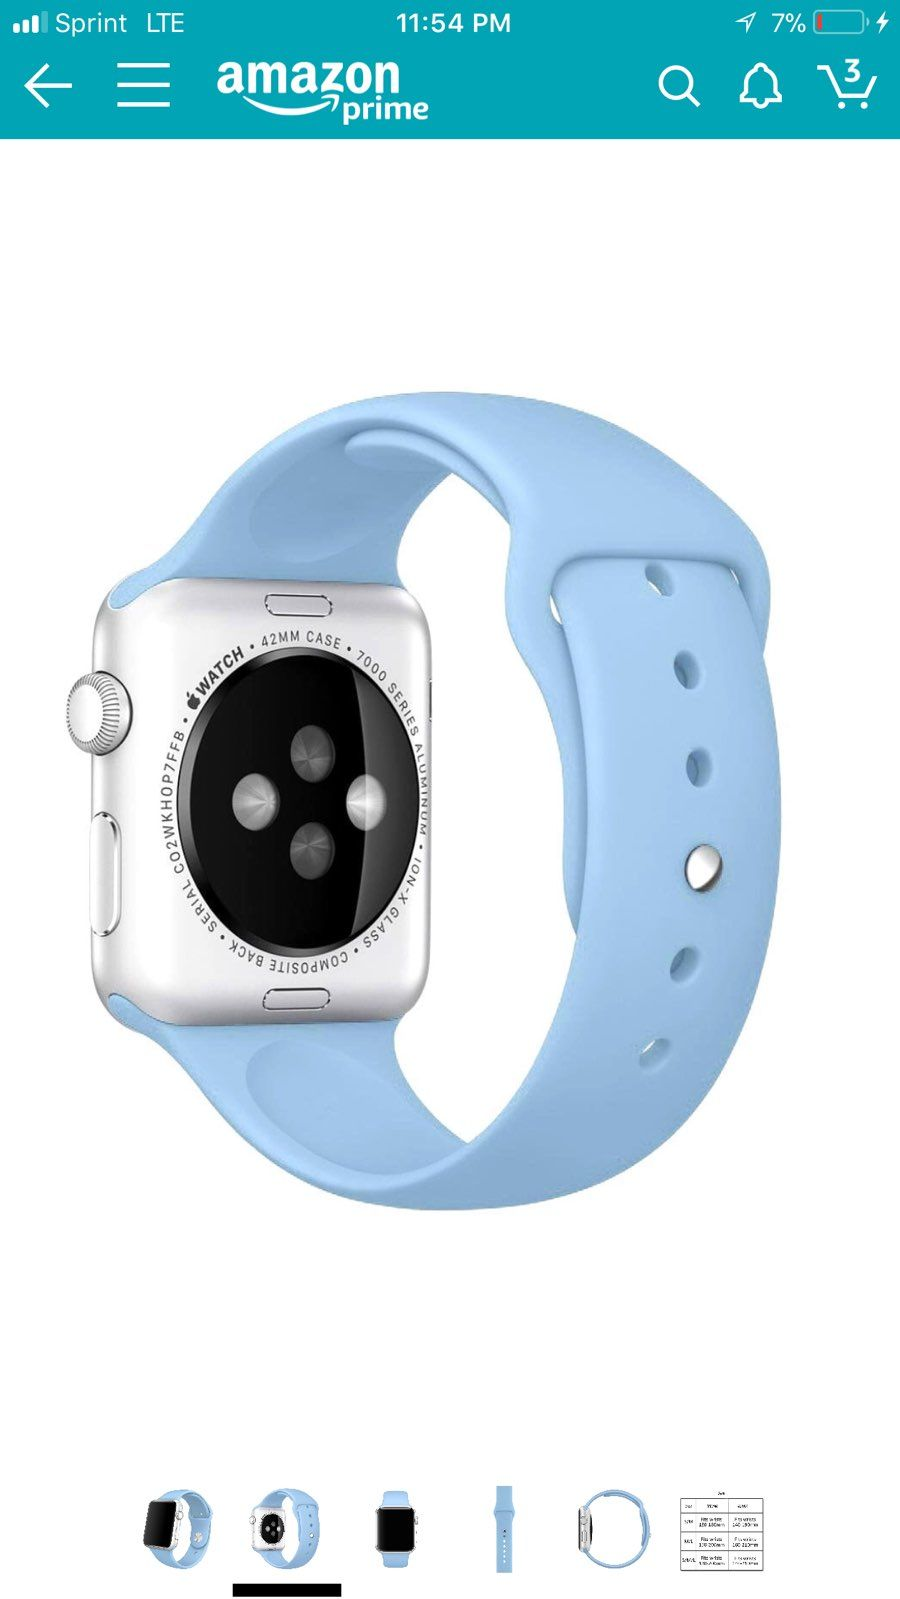 Sport Band For Apple Watch 38mm Mercari The Selling App Apple Watch 38mm Apple Watch Apple Watch Nike